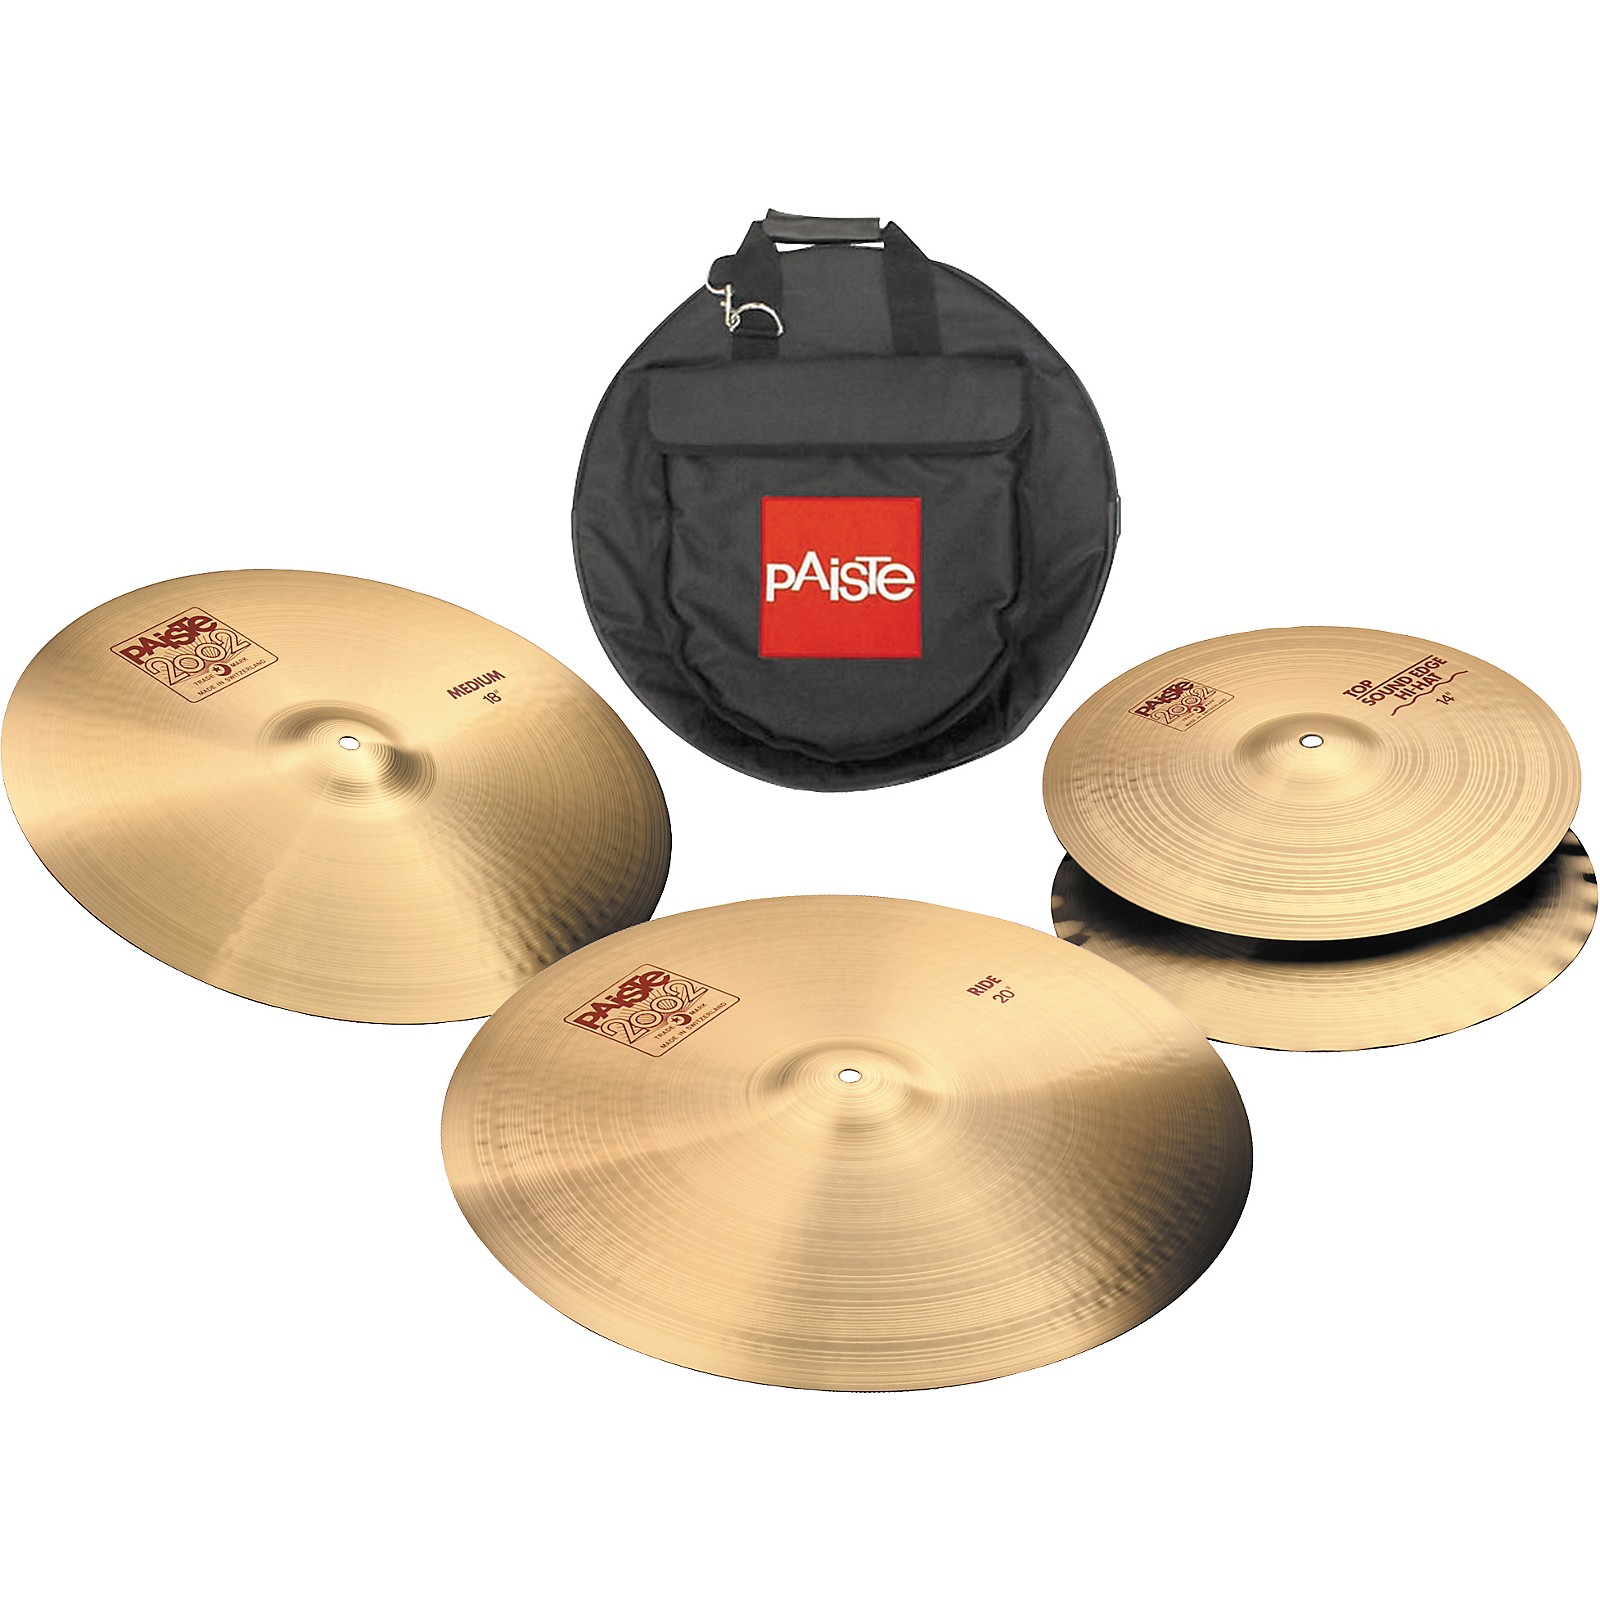 Paiste 2002 Cymbal Pack